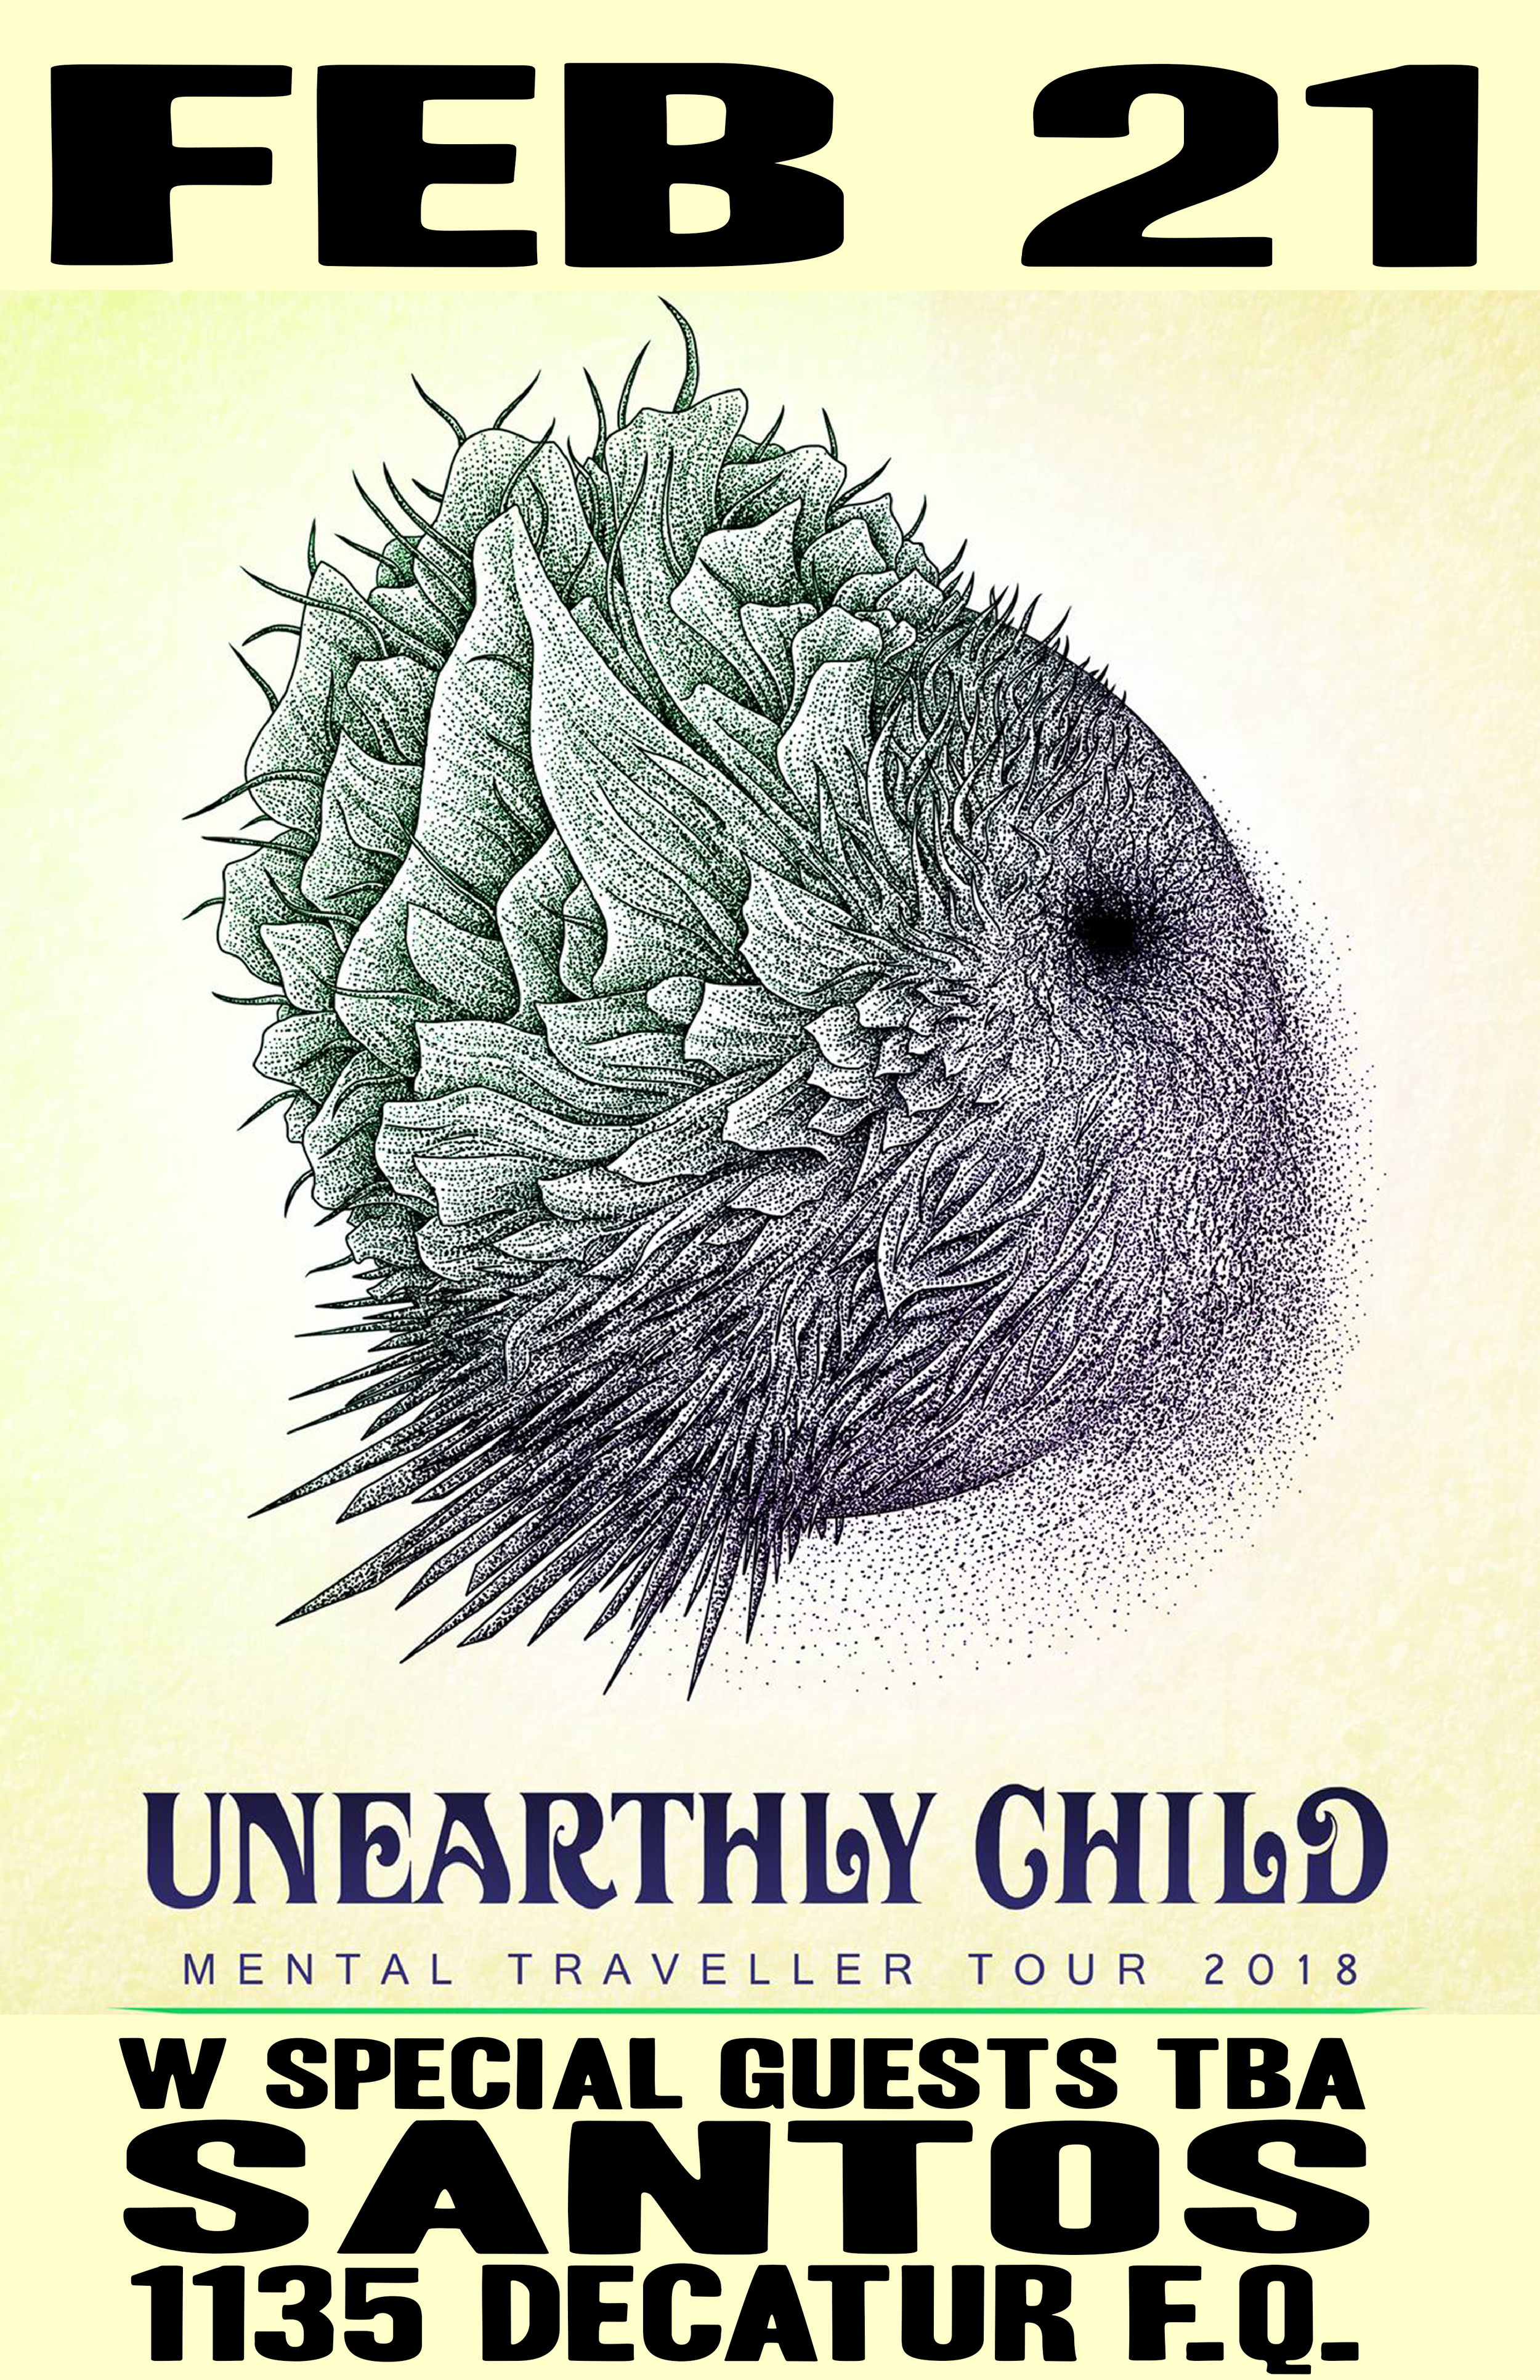 UNEARTHLY CHILD copy.png